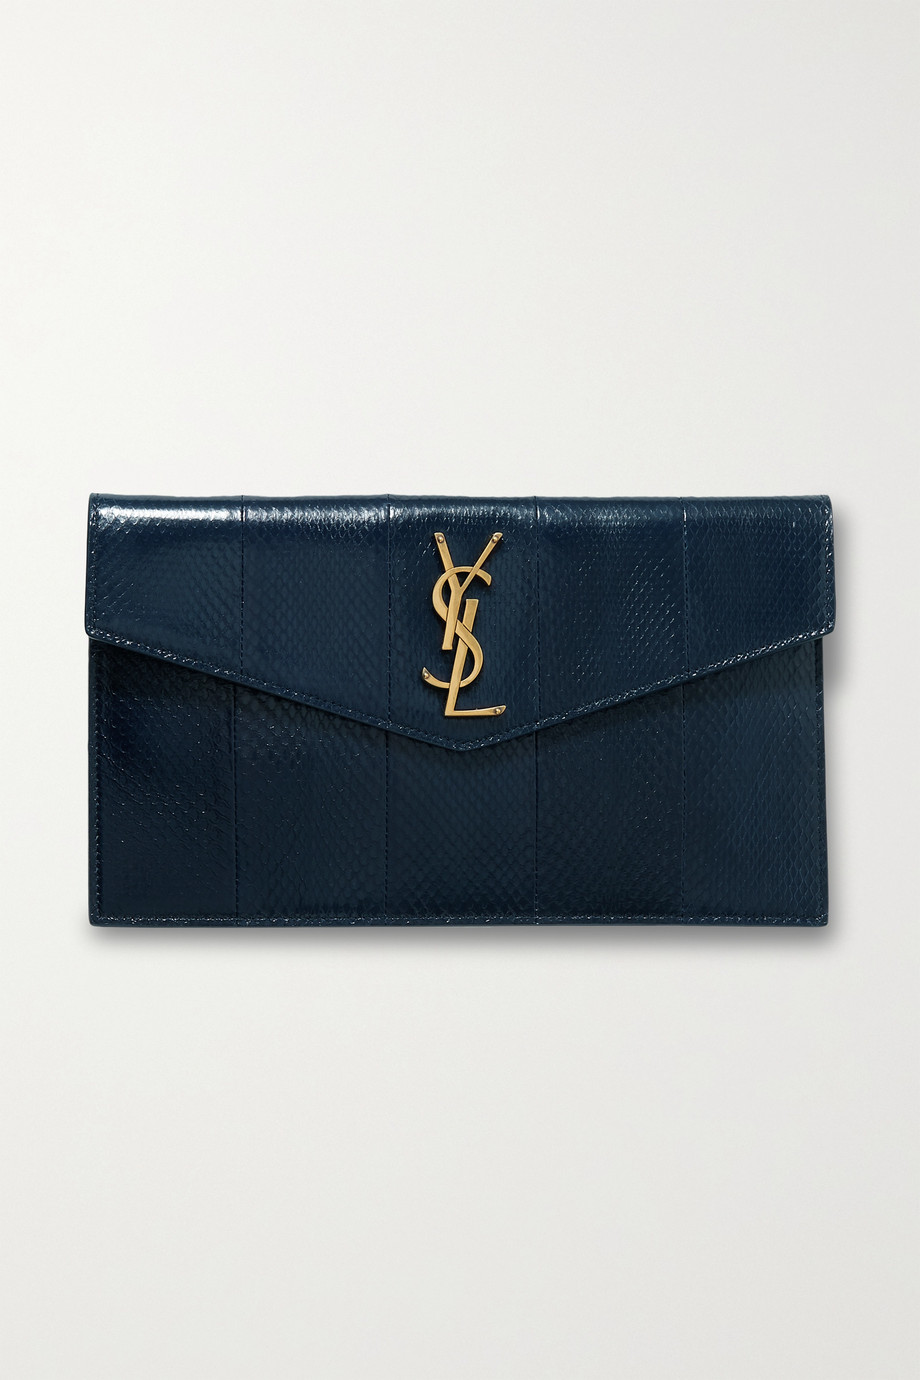 SAINT LAURENT Uptown snake-effect leather pouch